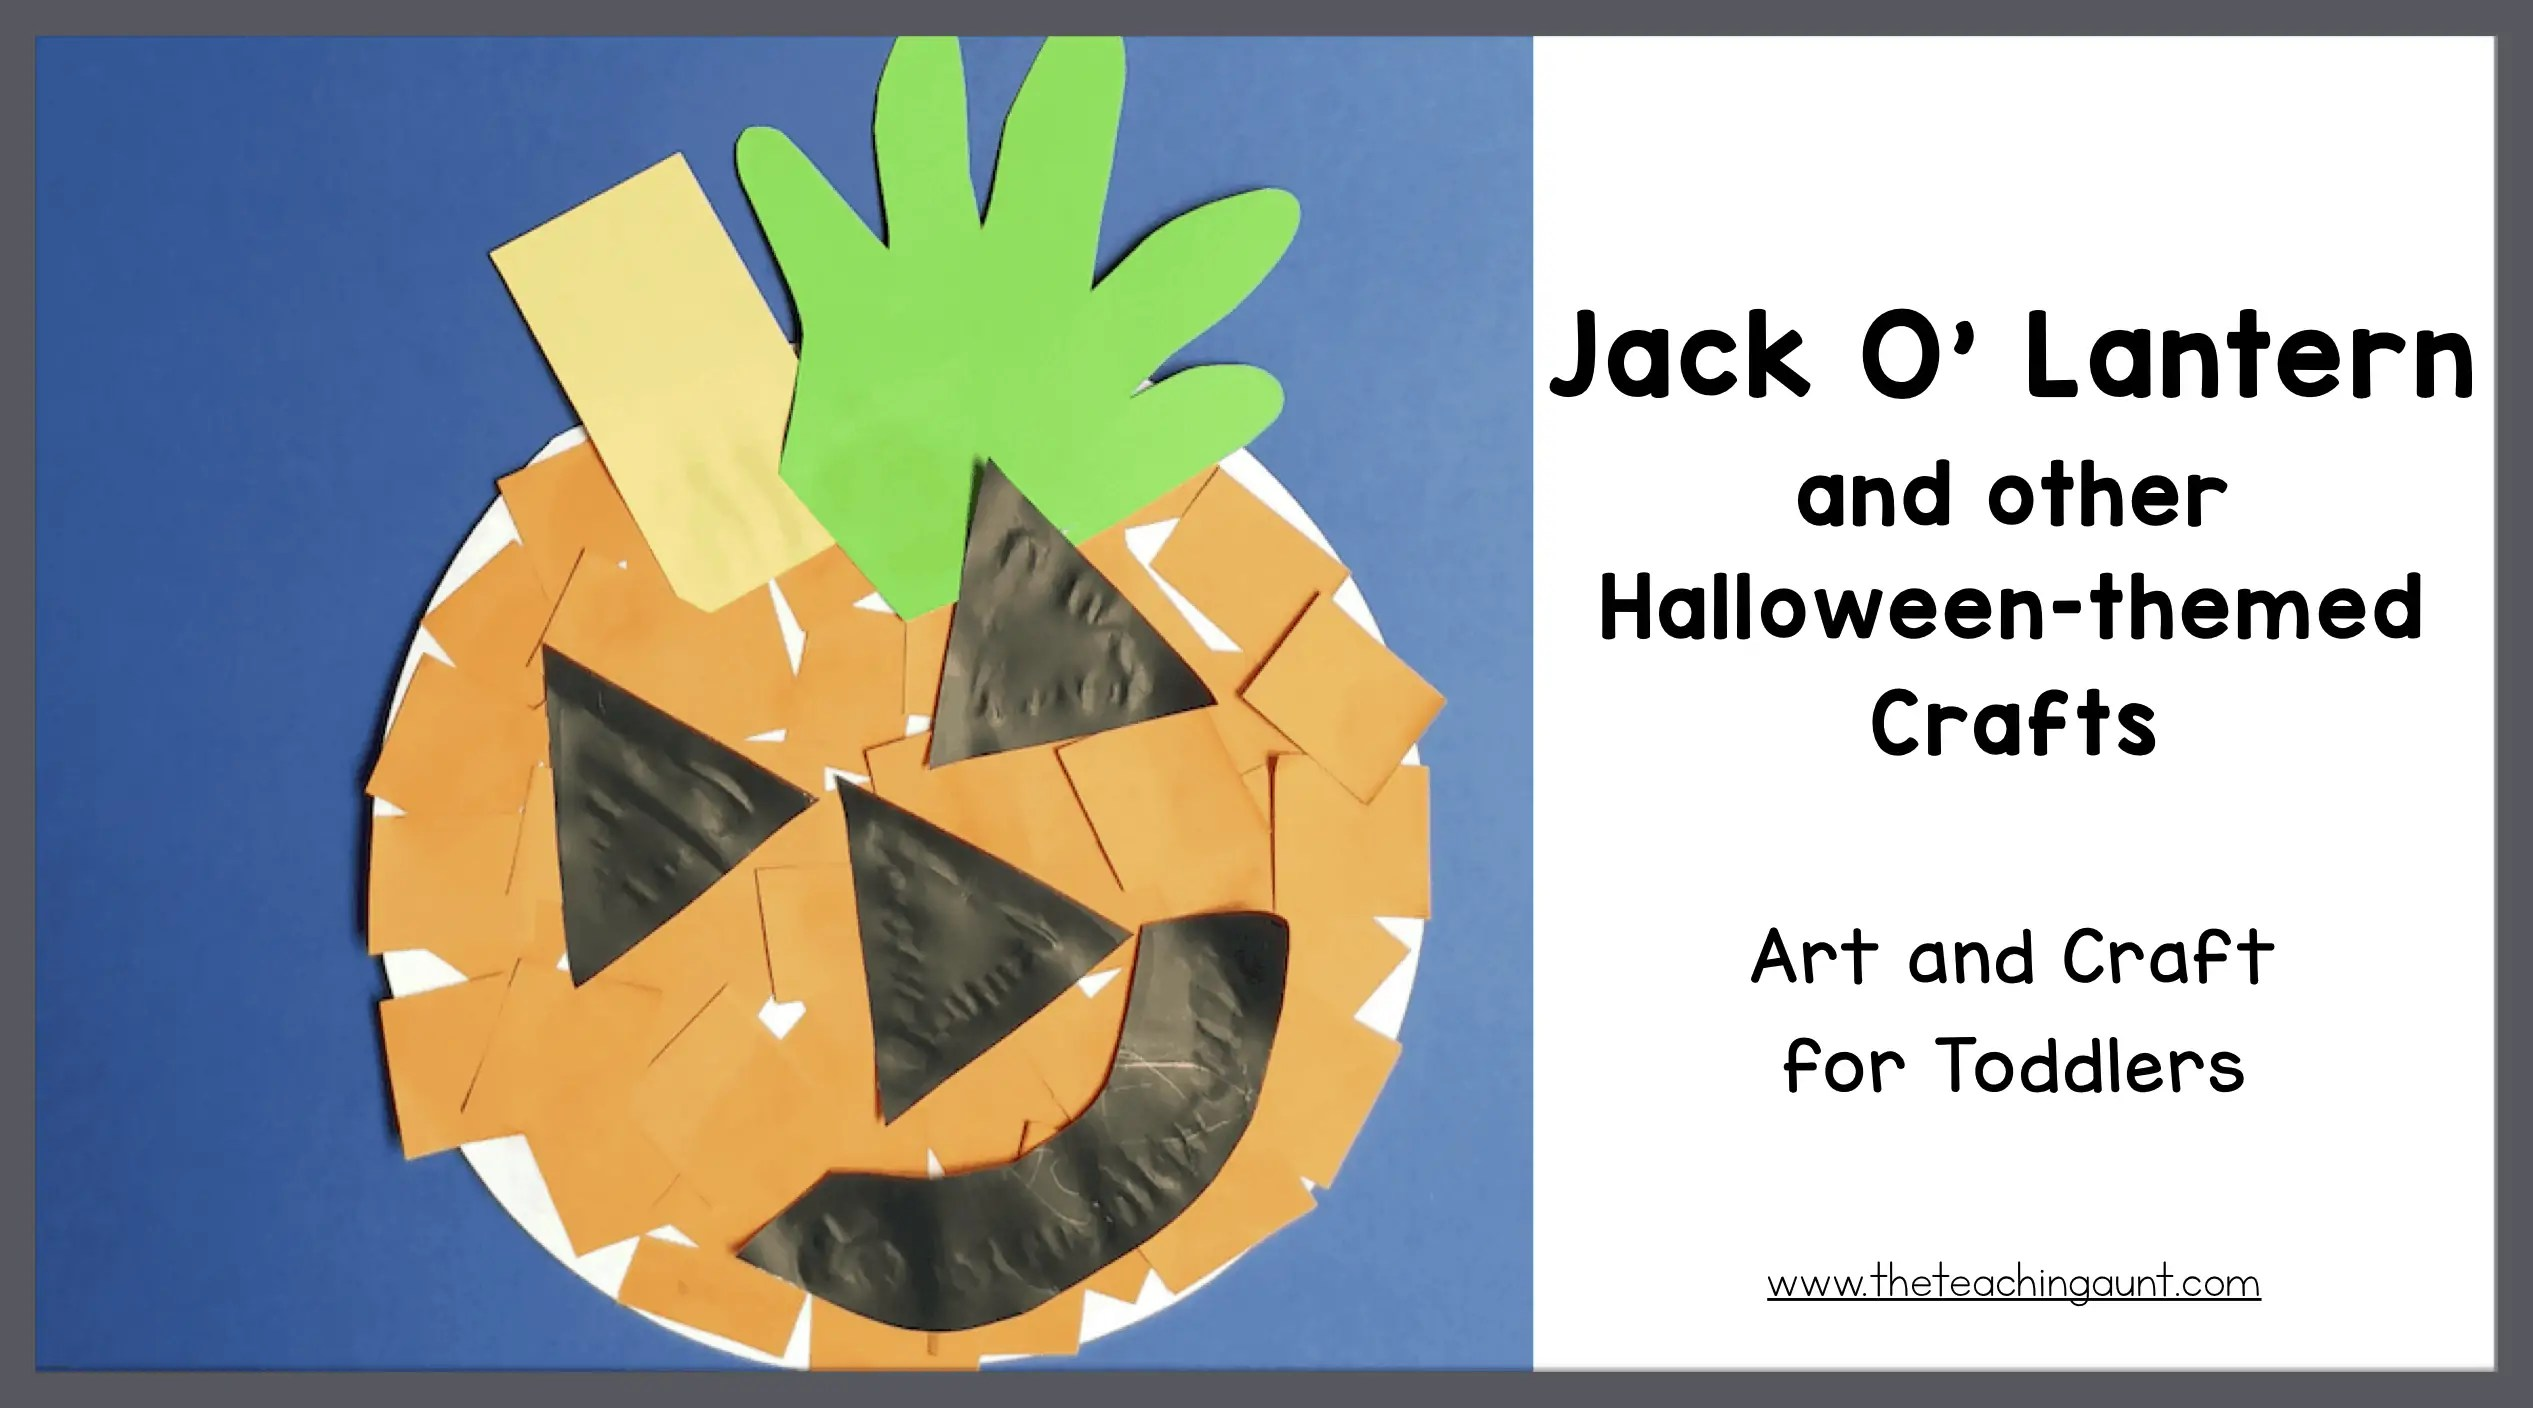 Jack O' Lantern Craft for Toddlers